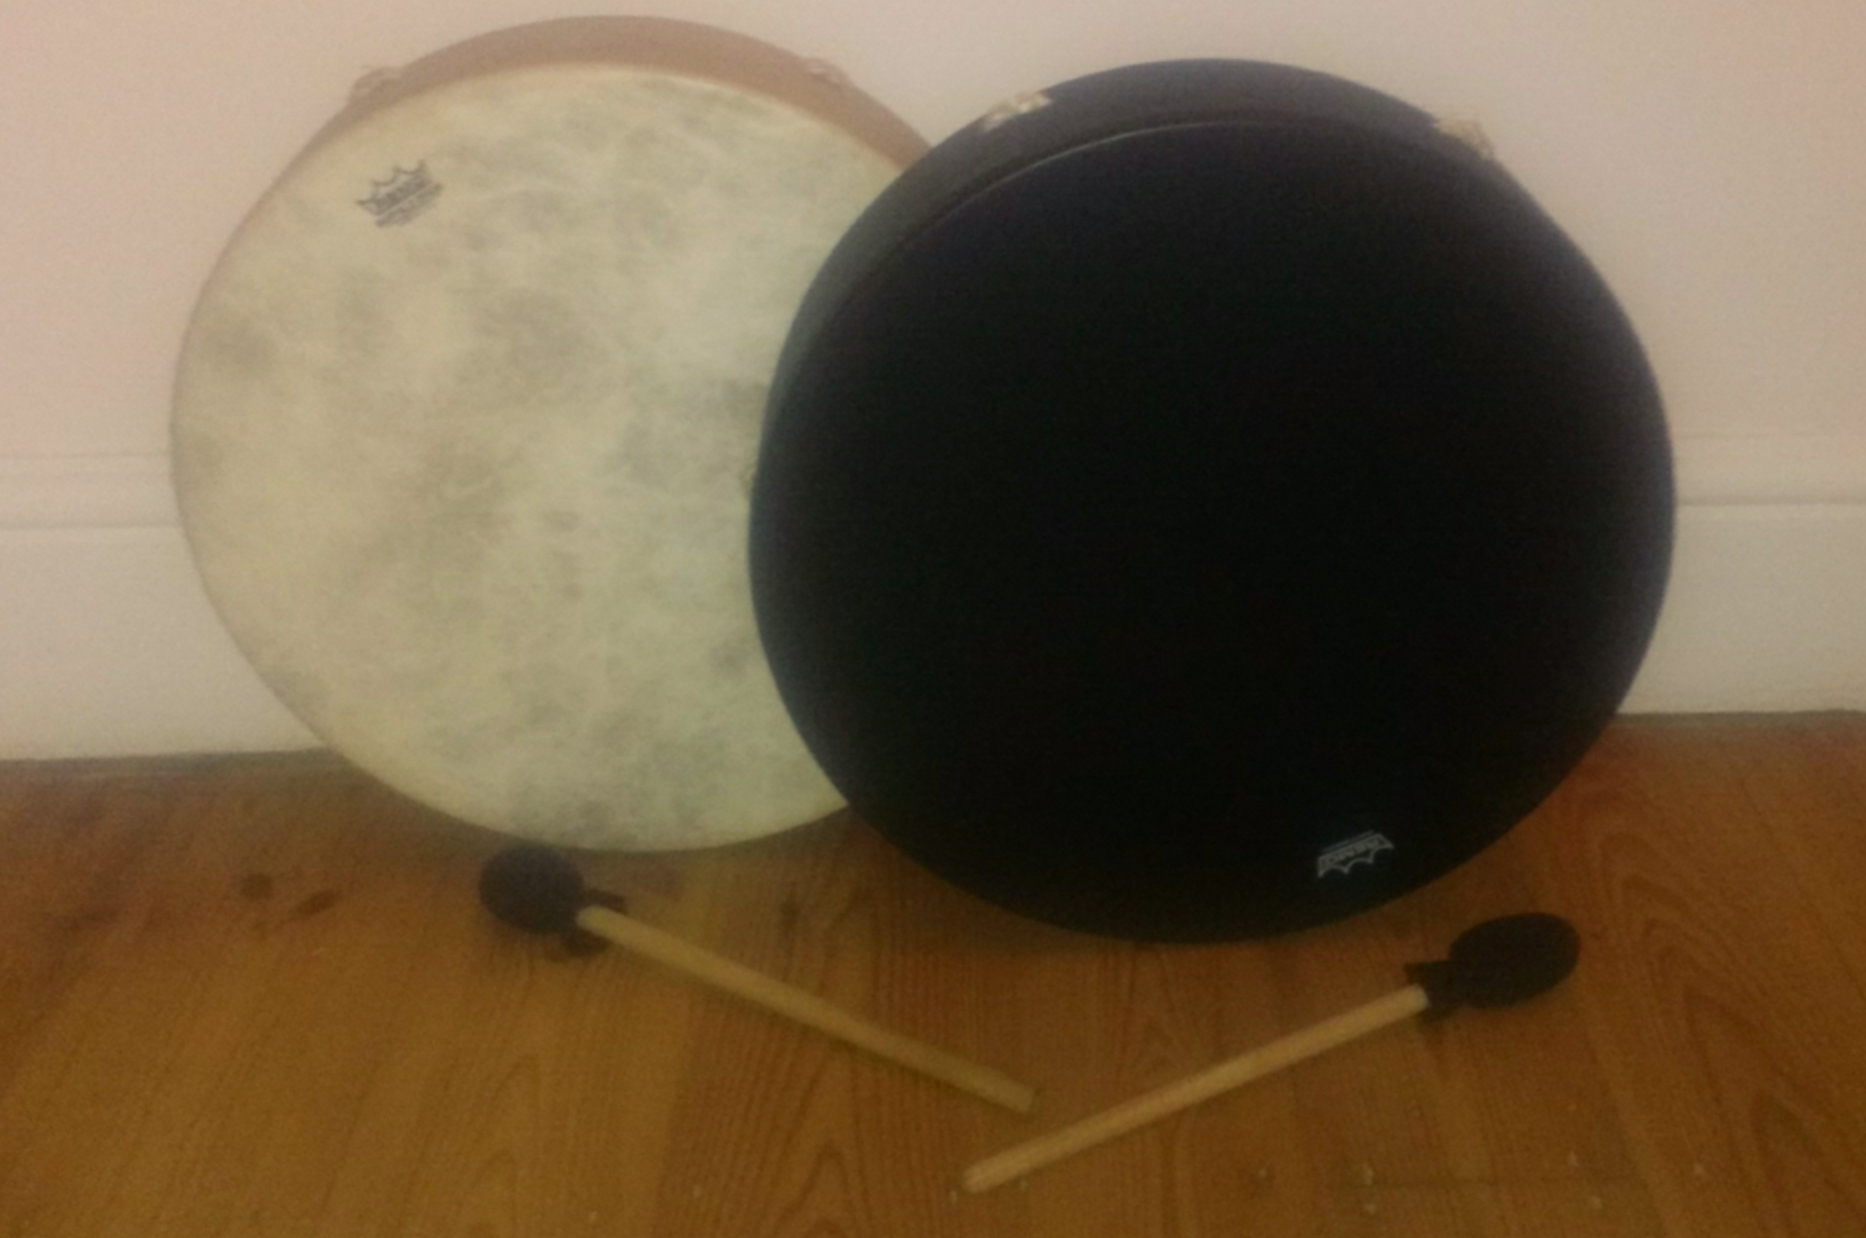 A black drum and a white drum